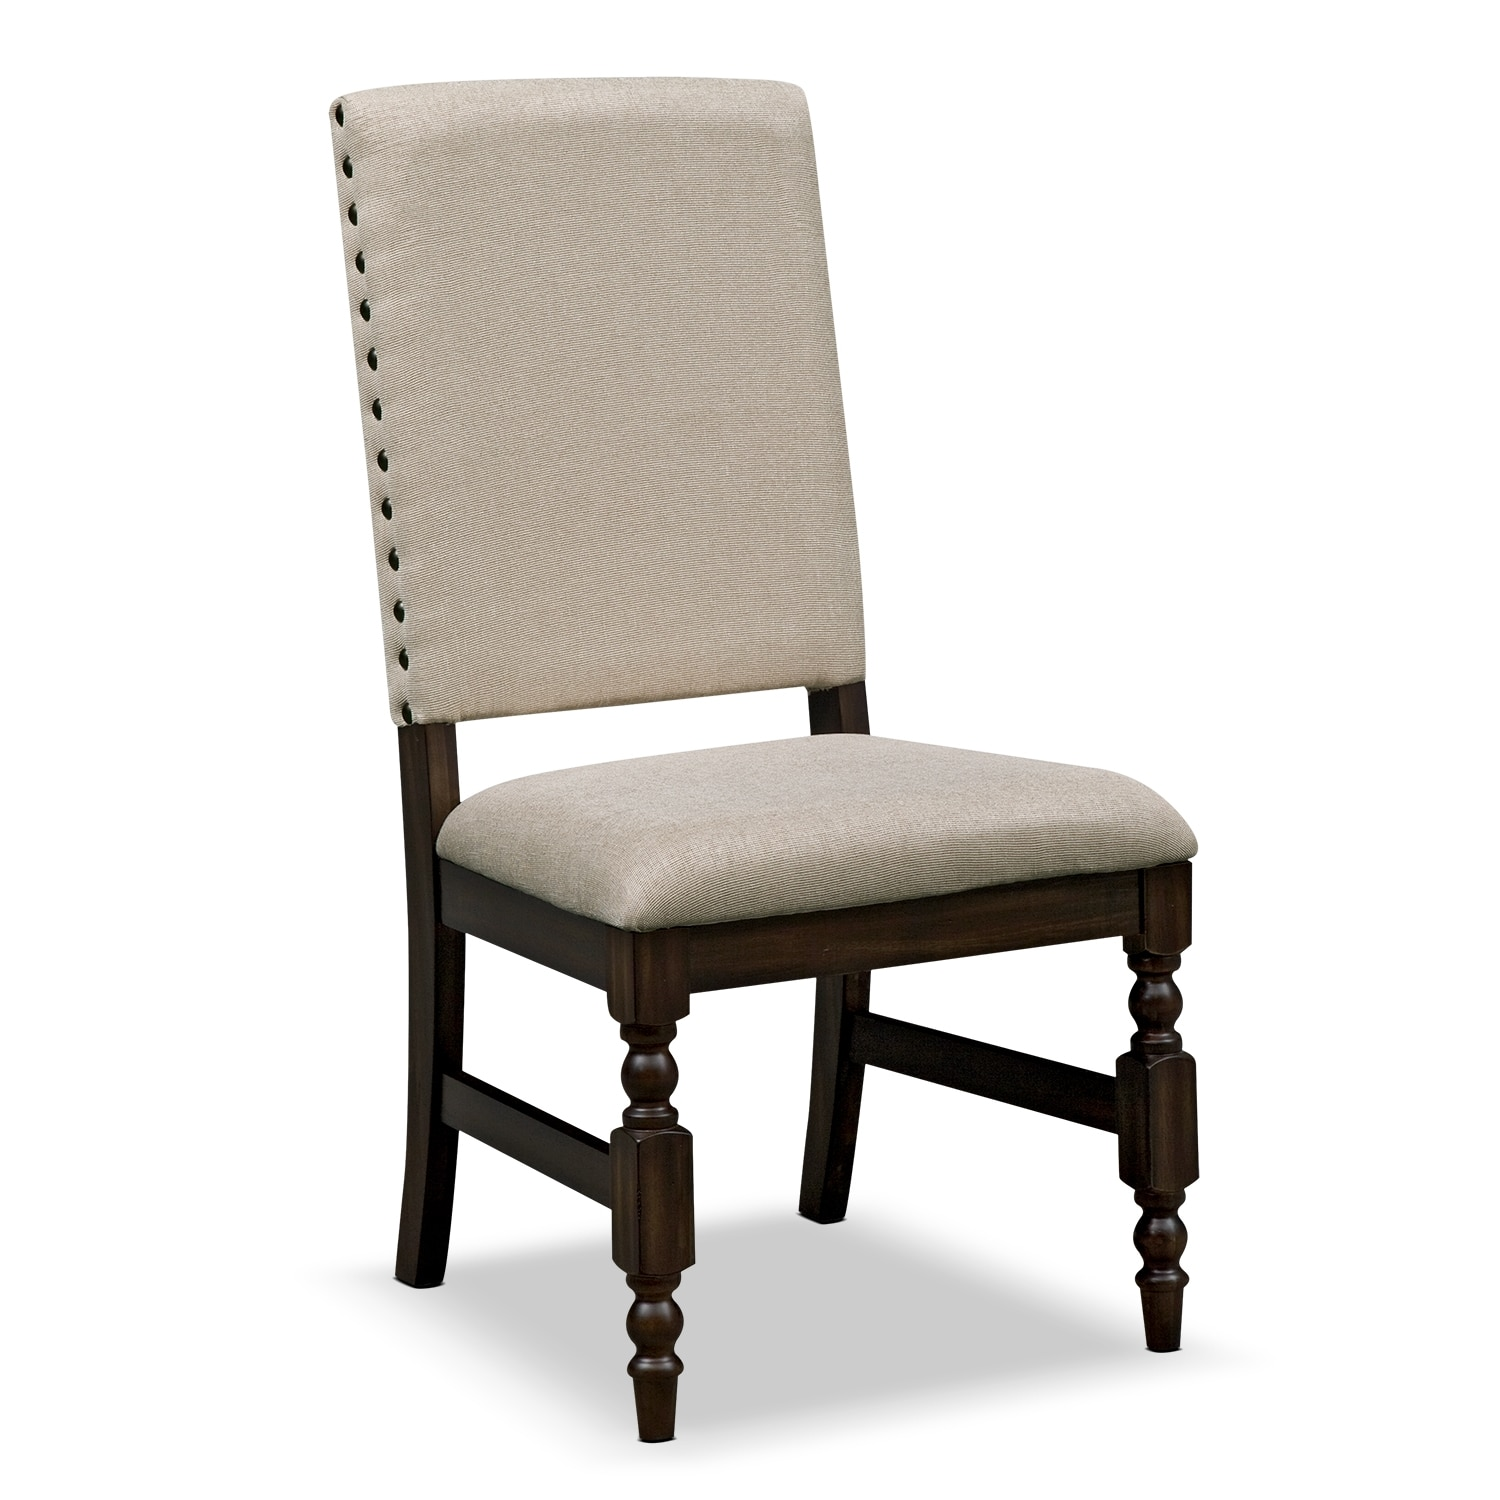 [Ashton Chair]